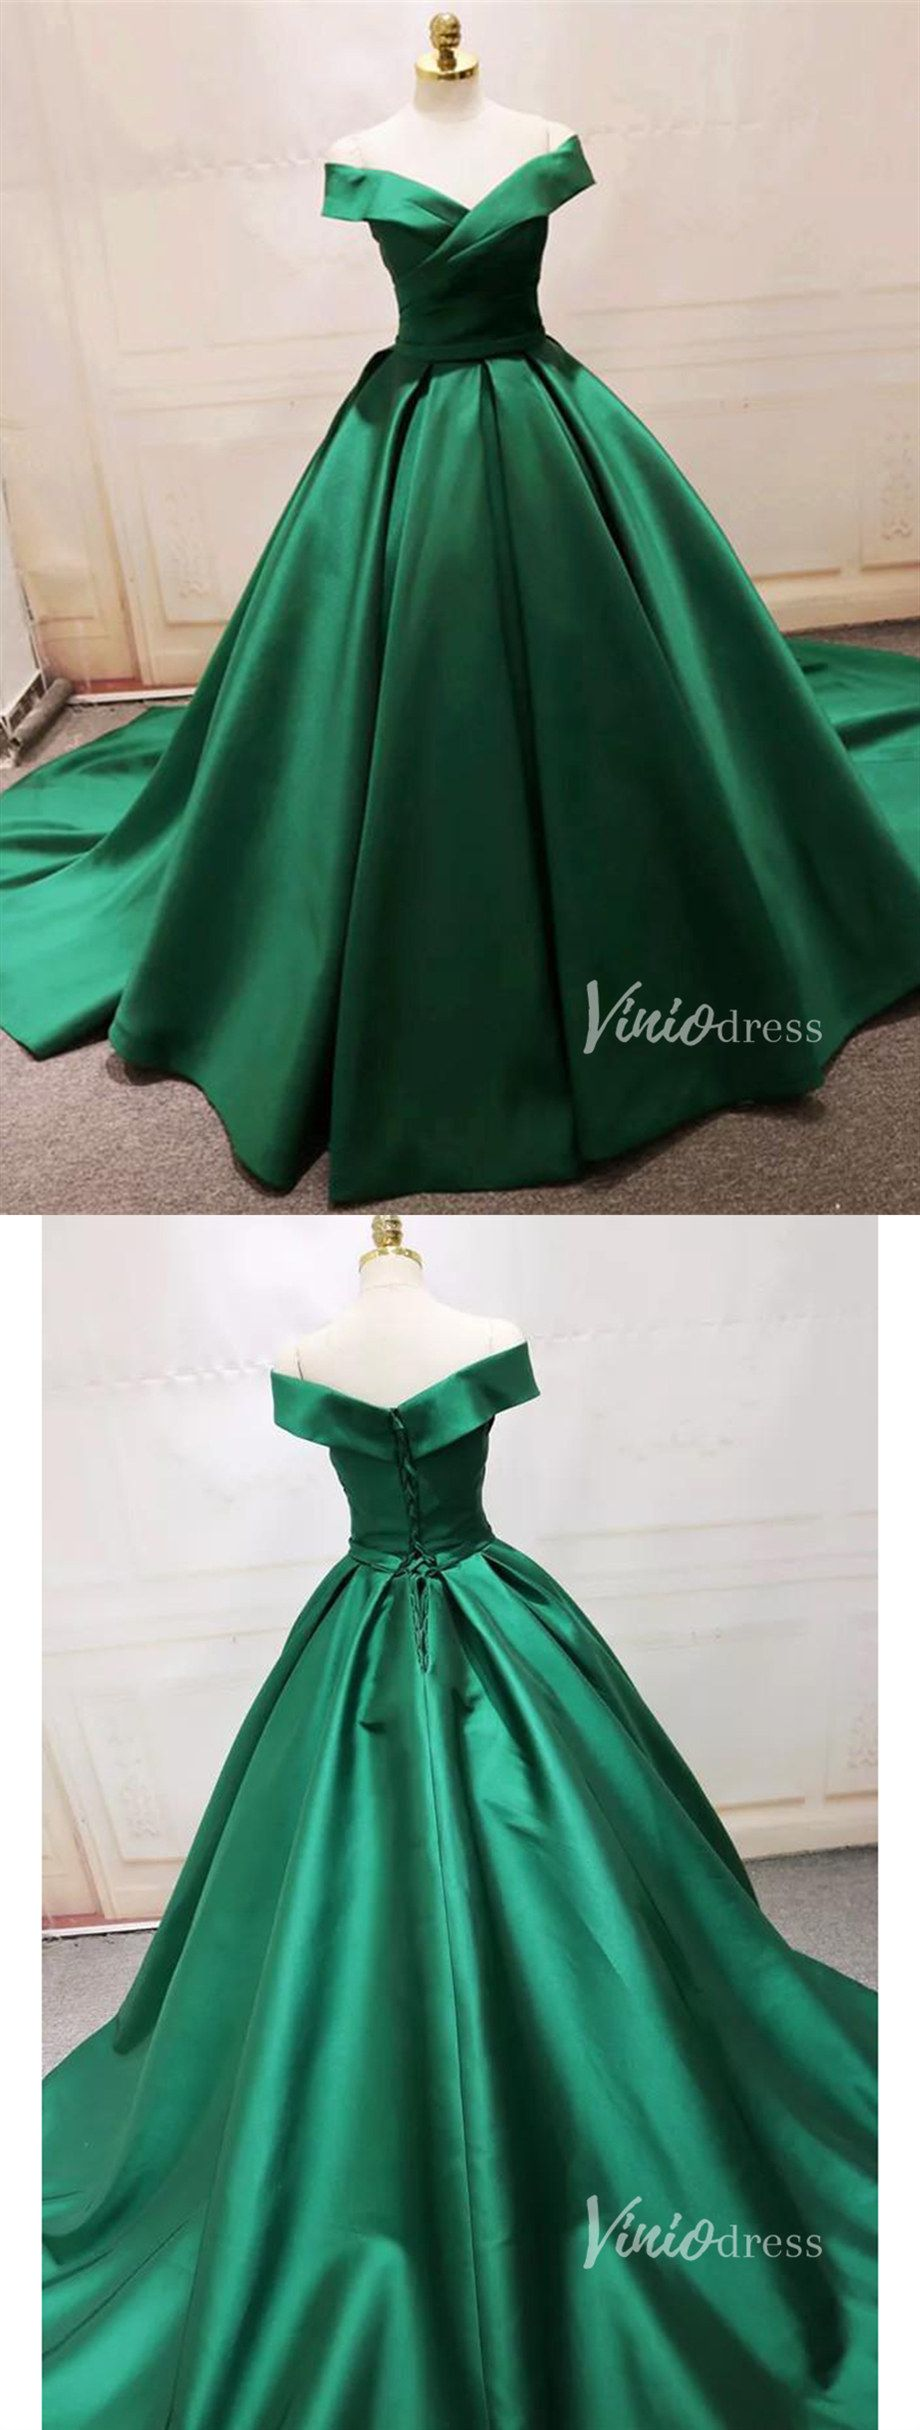 Simple elegant emerald green prom dress with train.